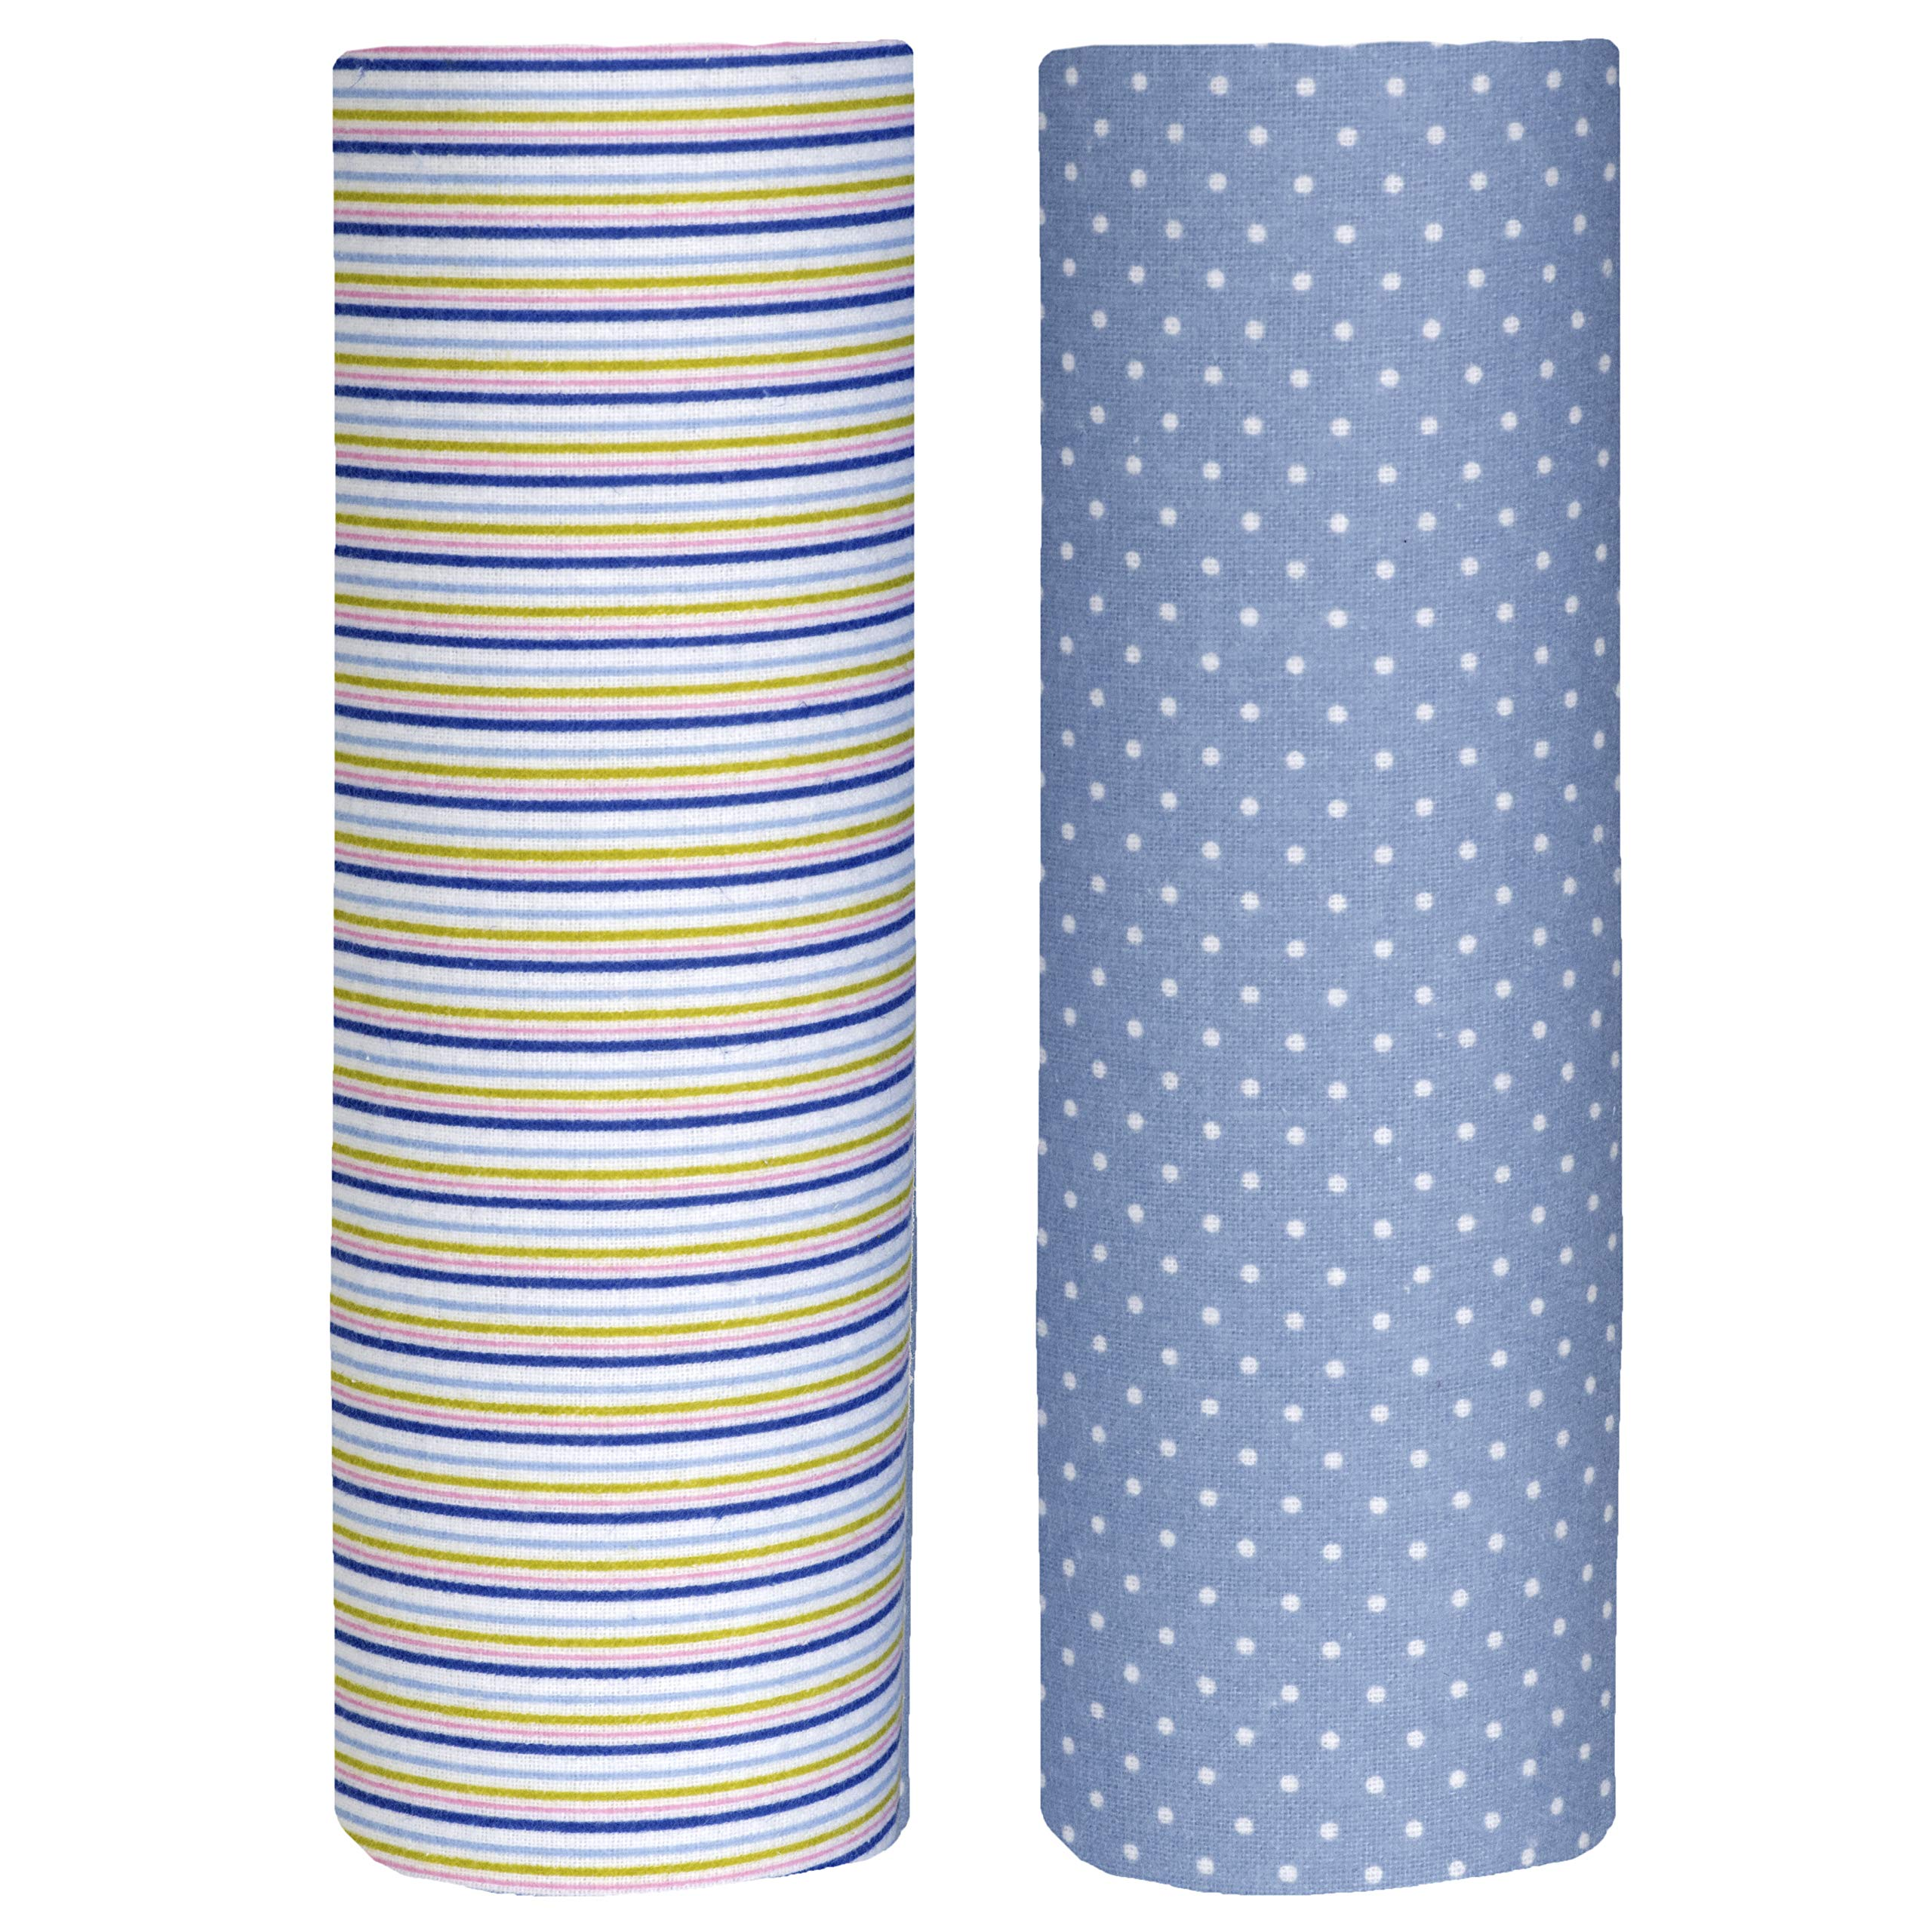 Cuddles & Cribs Cotton Flannel Baby Receiving Blankets - 2 Count (Blue Stripe & Spots, One Size)